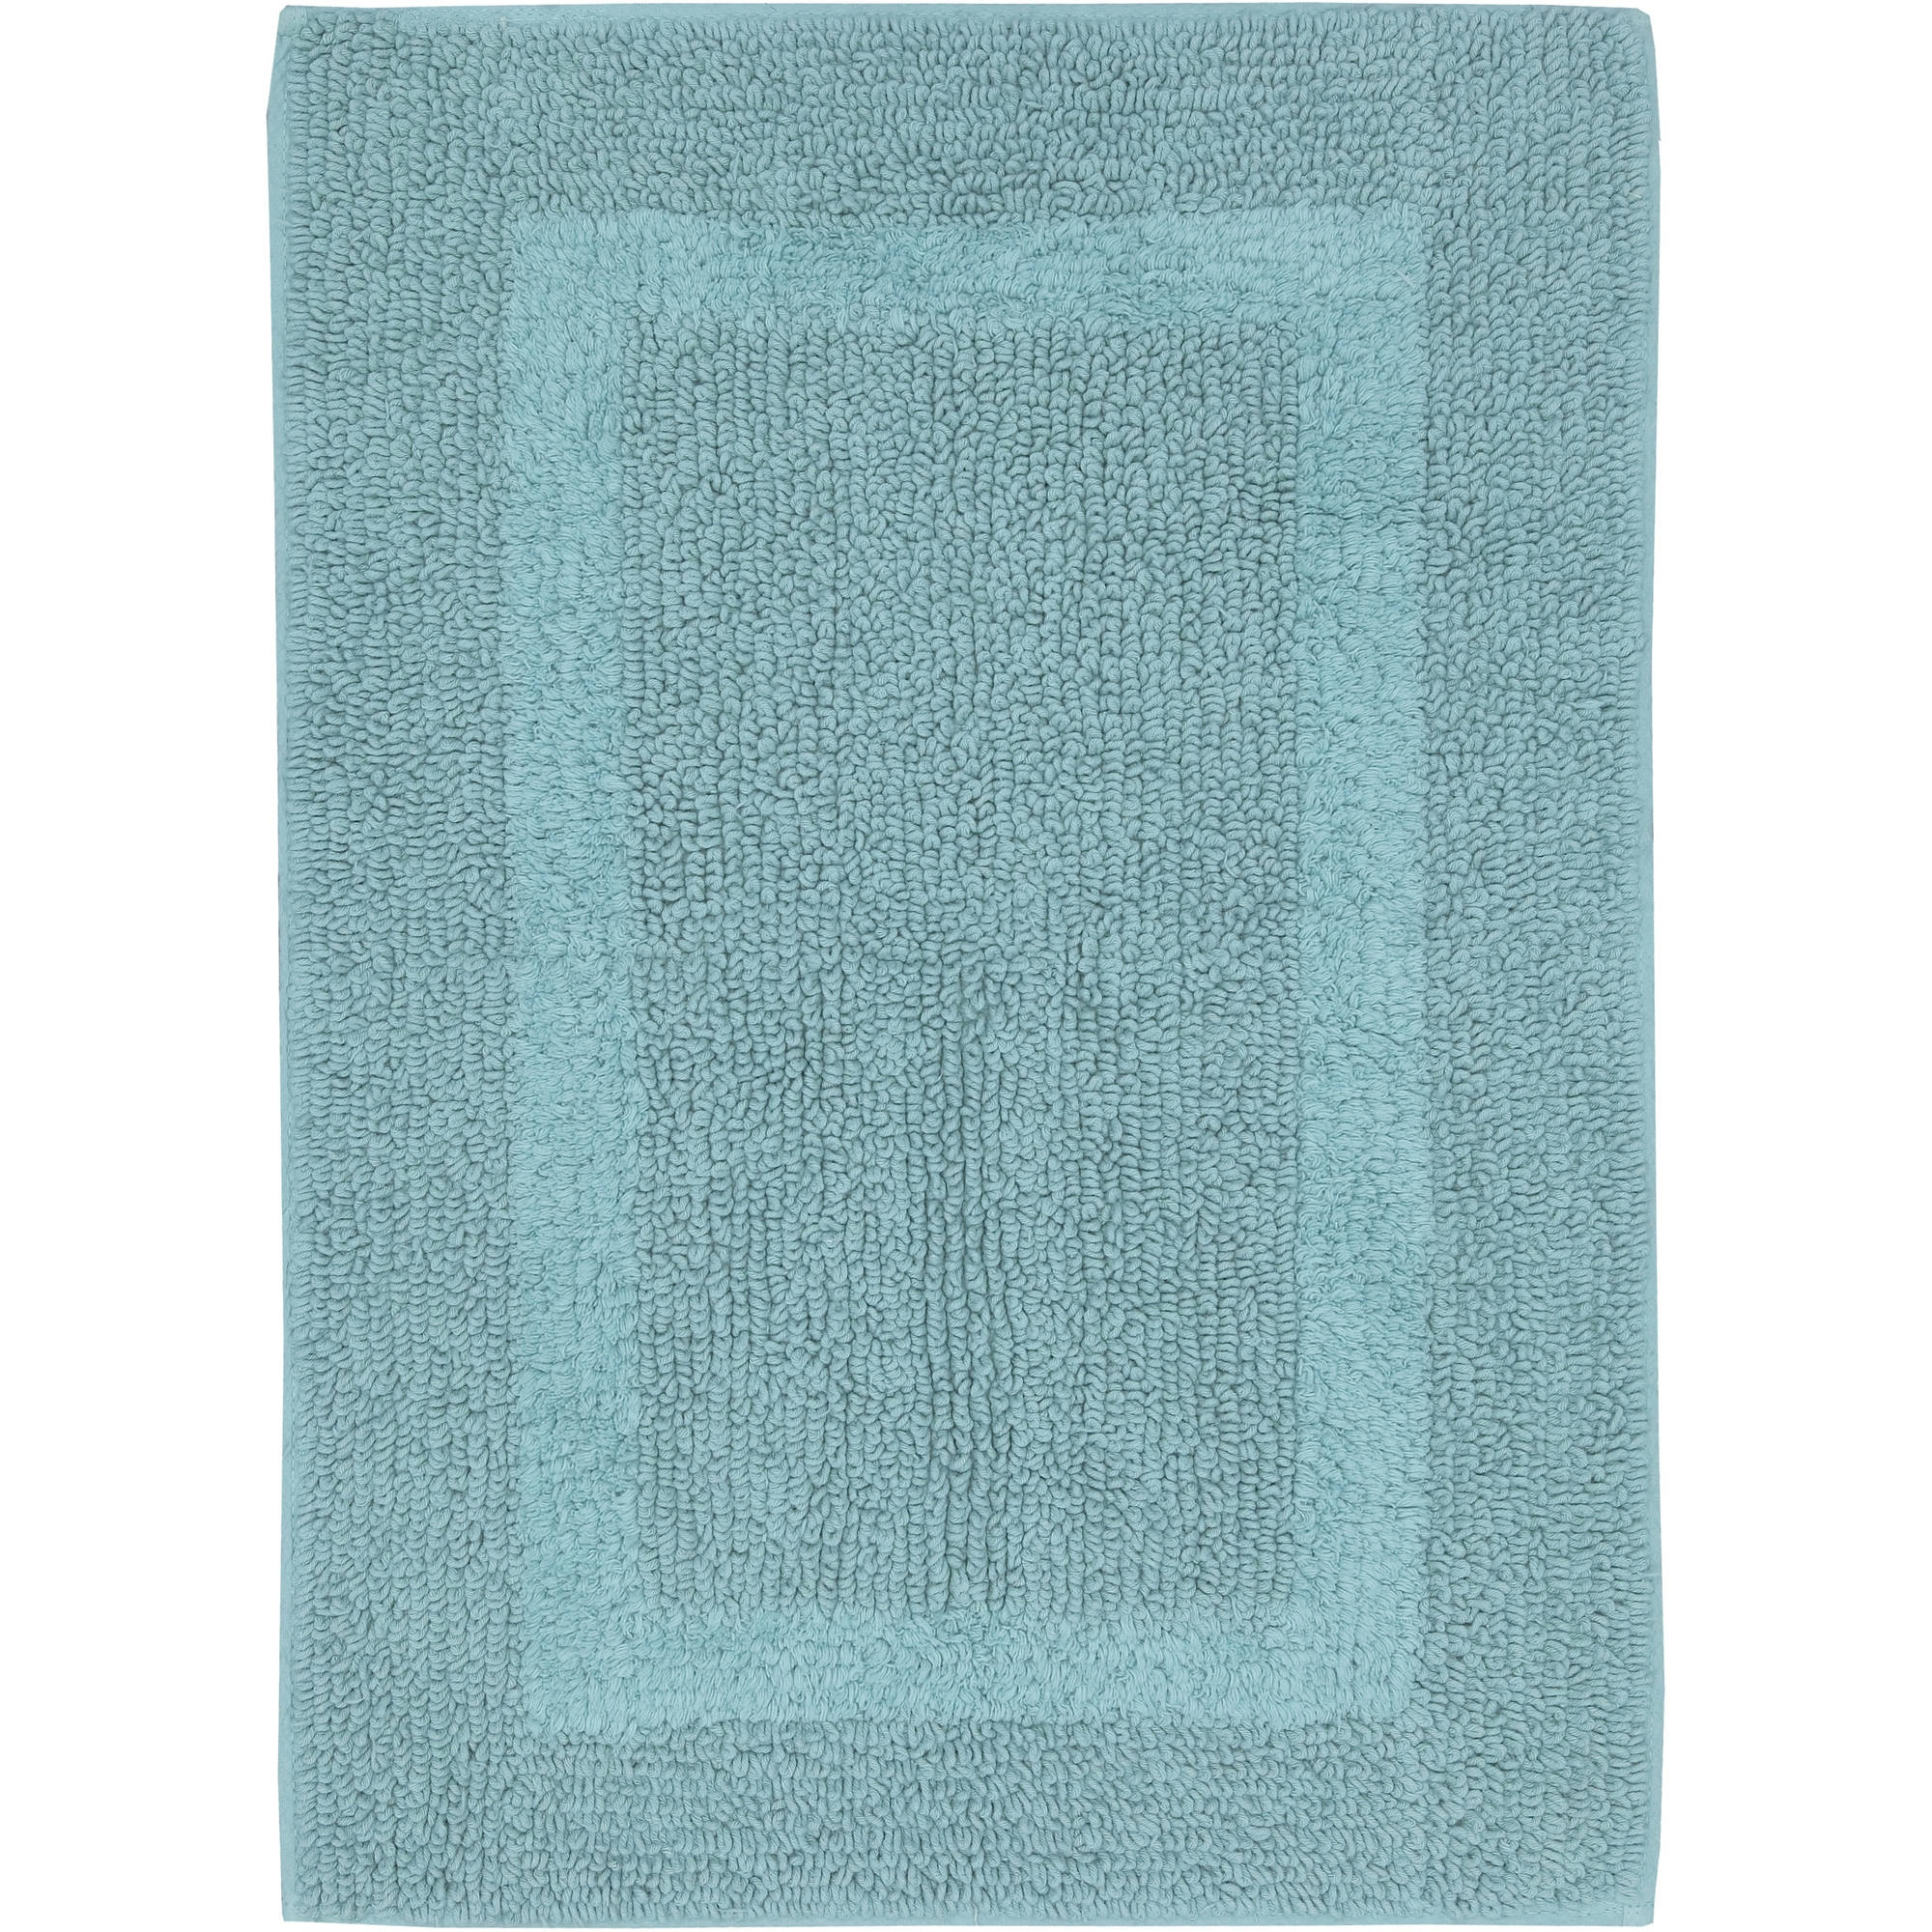 Permalink to Bathroom Rugs And Mats